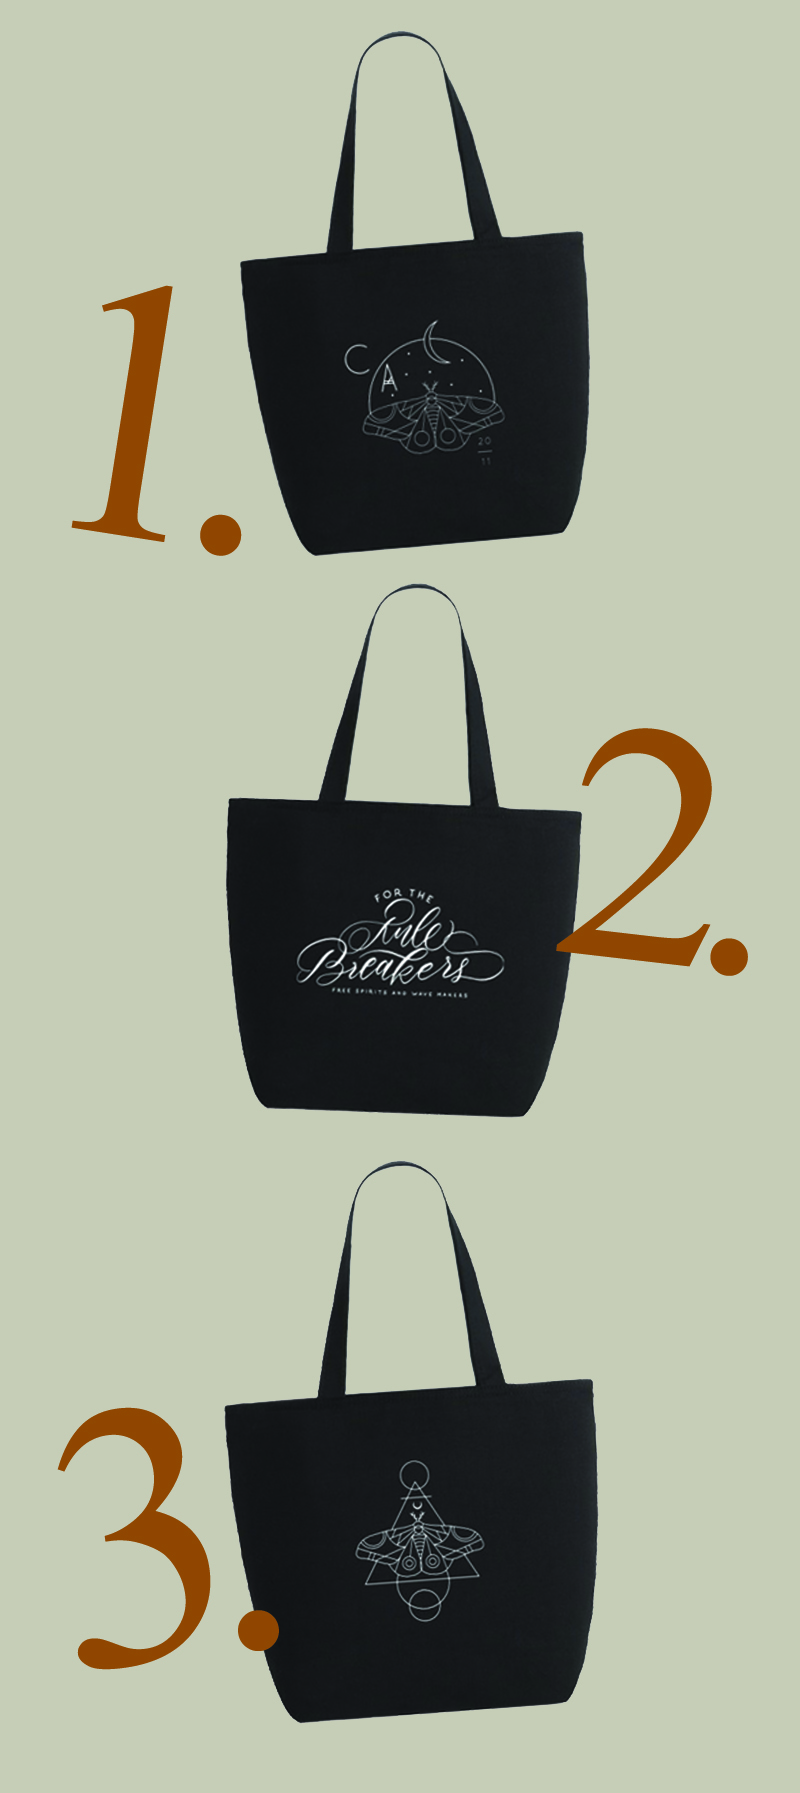 I have been wanting to design a market bag or two since re-branding last year. I instantly thought that the new logo would look rad on a bag, so here we go! Soon we will be offering 1 or 2 styles of totes complete with tassel detail. The black tote its self is canvas with zipper closure. Its a perfect carry all tote!  Stay tuned for drop date on these bags!  Vote for your favorite patter(s) in the comments!